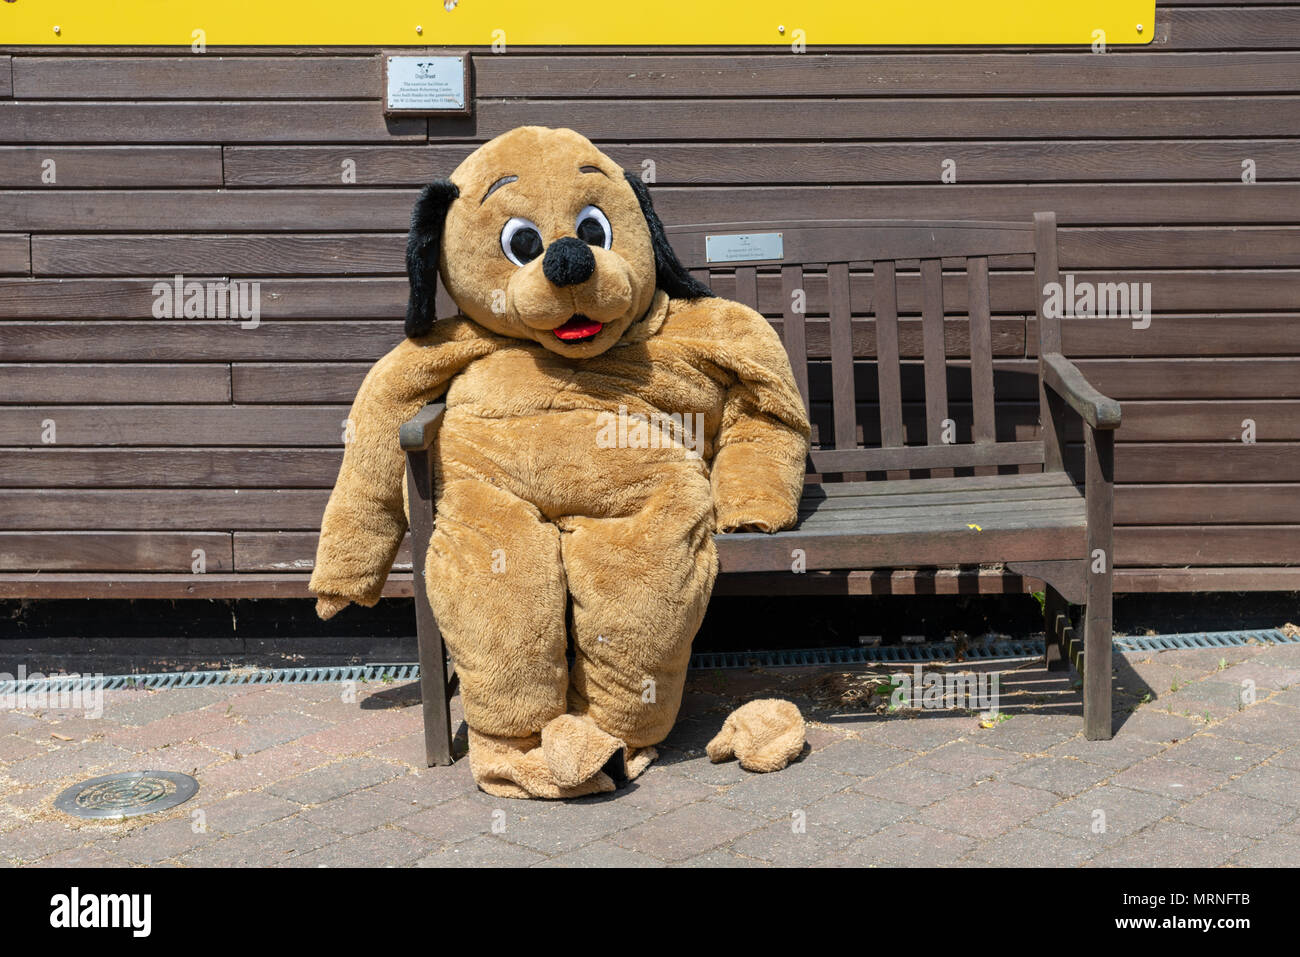 Incredible Fancy Dress Dog Costume Sitting On A Wooden Bench Outside On Beatyapartments Chair Design Images Beatyapartmentscom